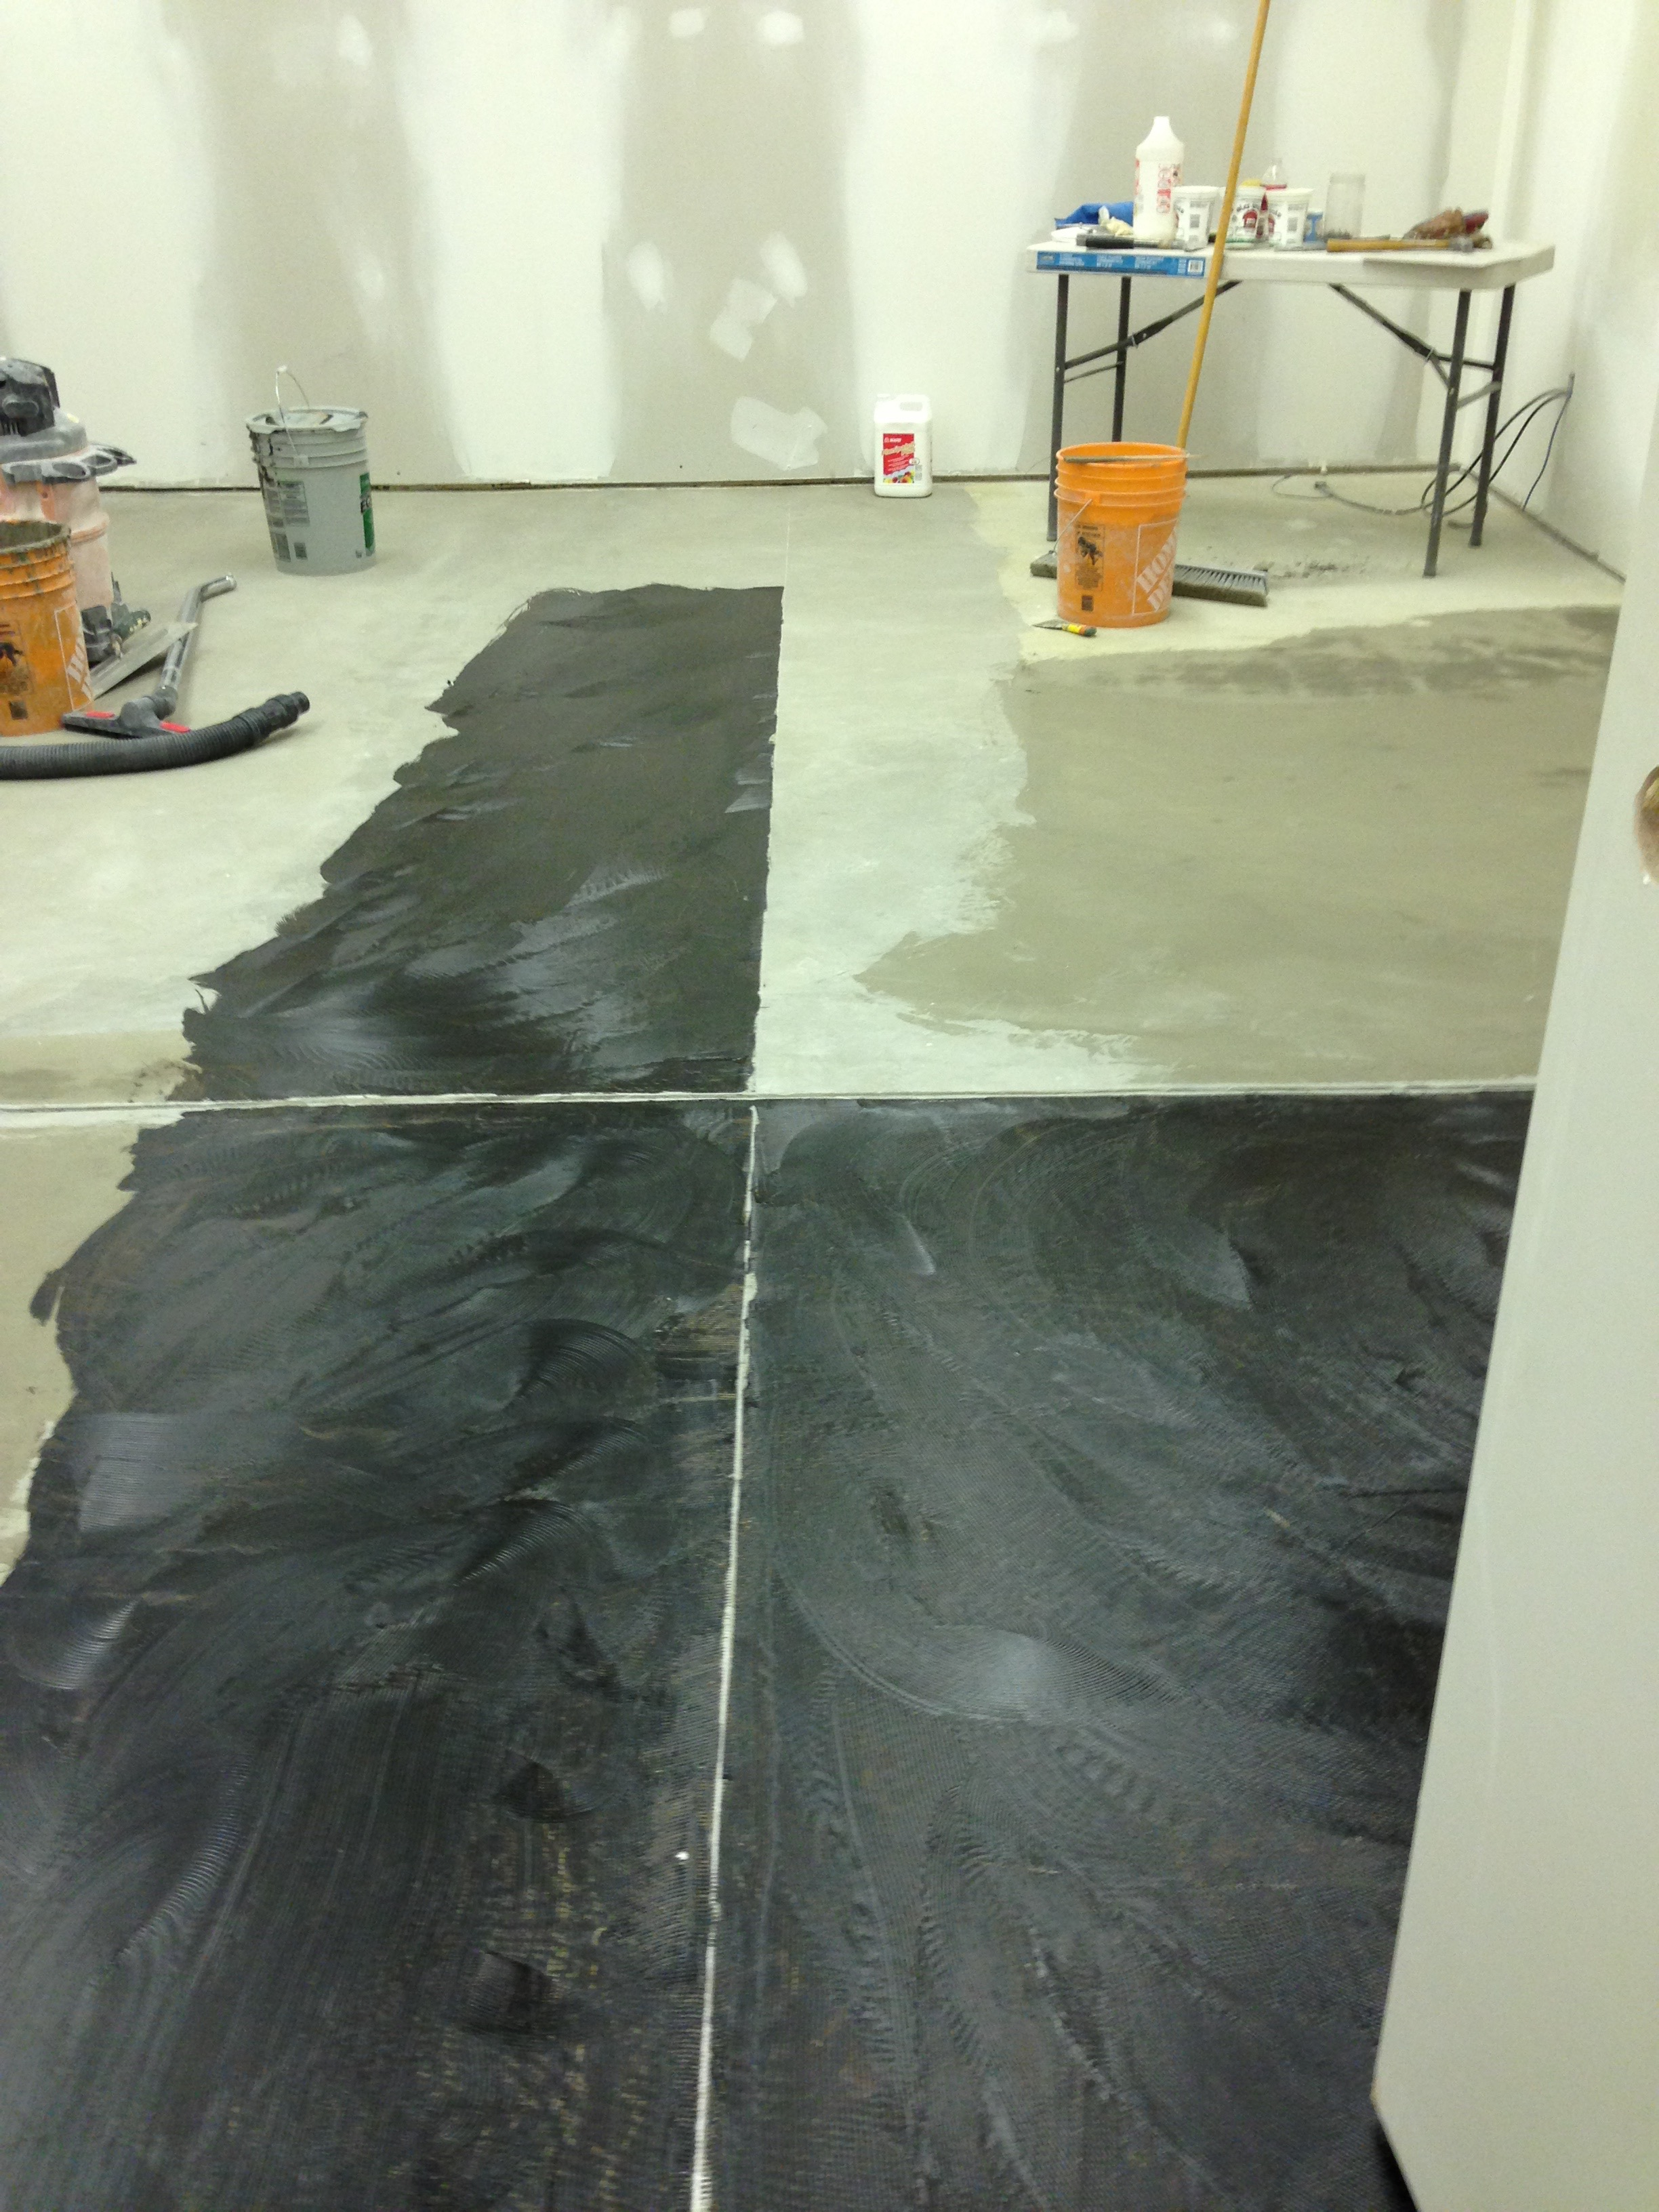 FC03  Floor Coverings - General Contractors Commercial Renovations in Edmonton, Office and Warehouse Project Contractors